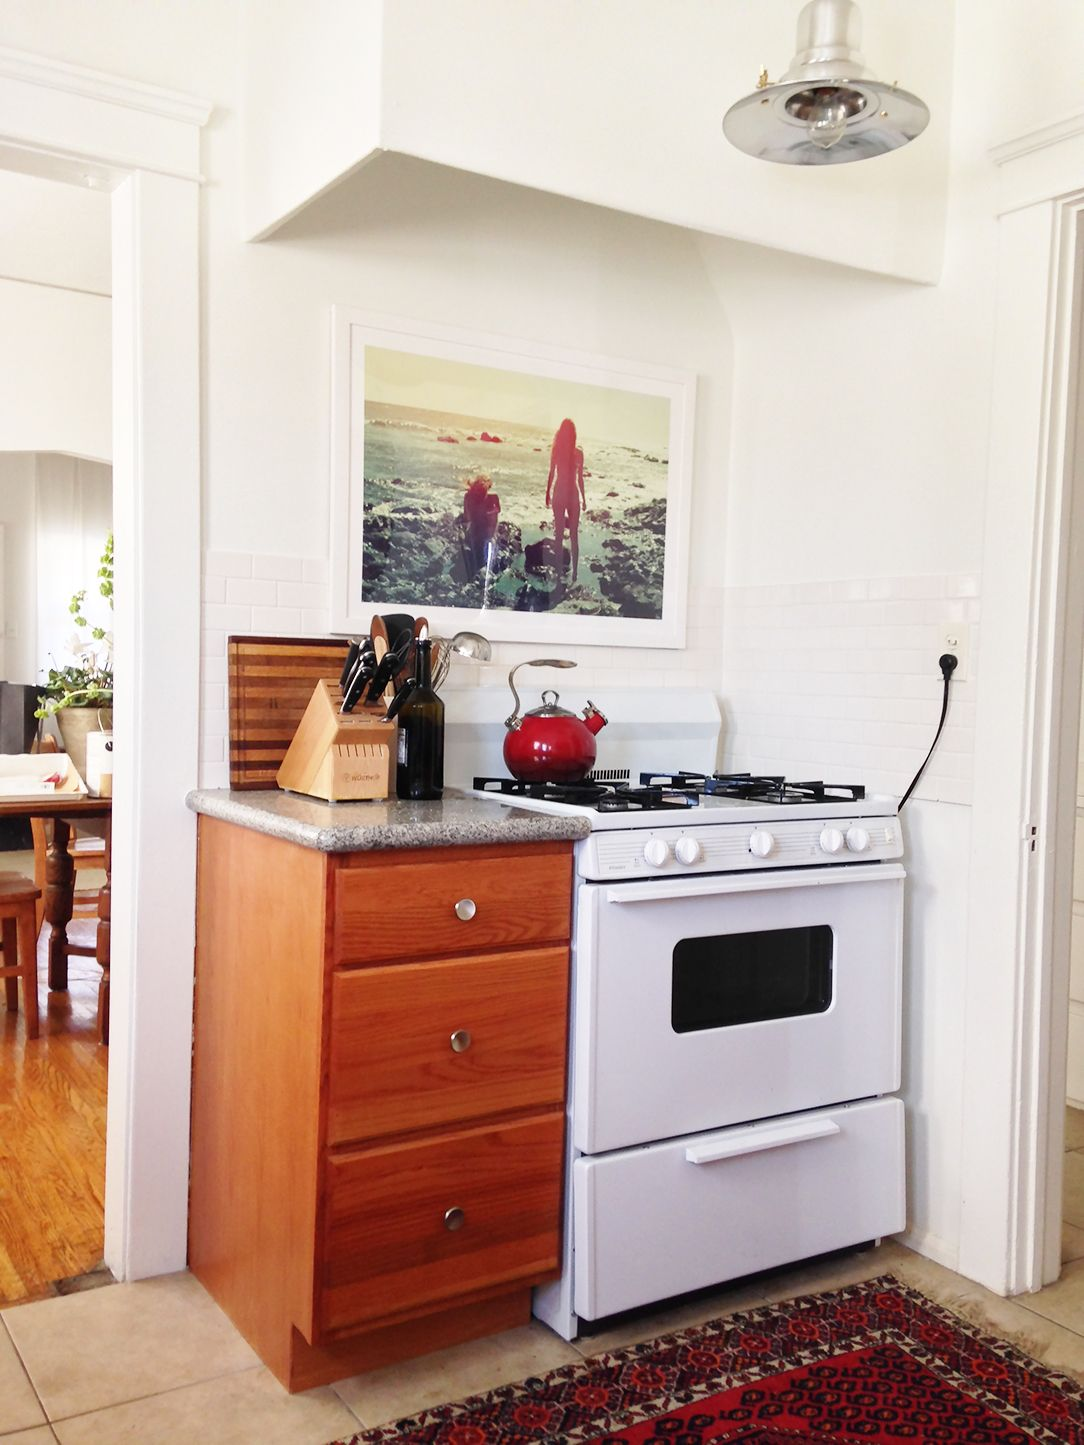 Before And After: An Affordable Rental Kitchen Makeover